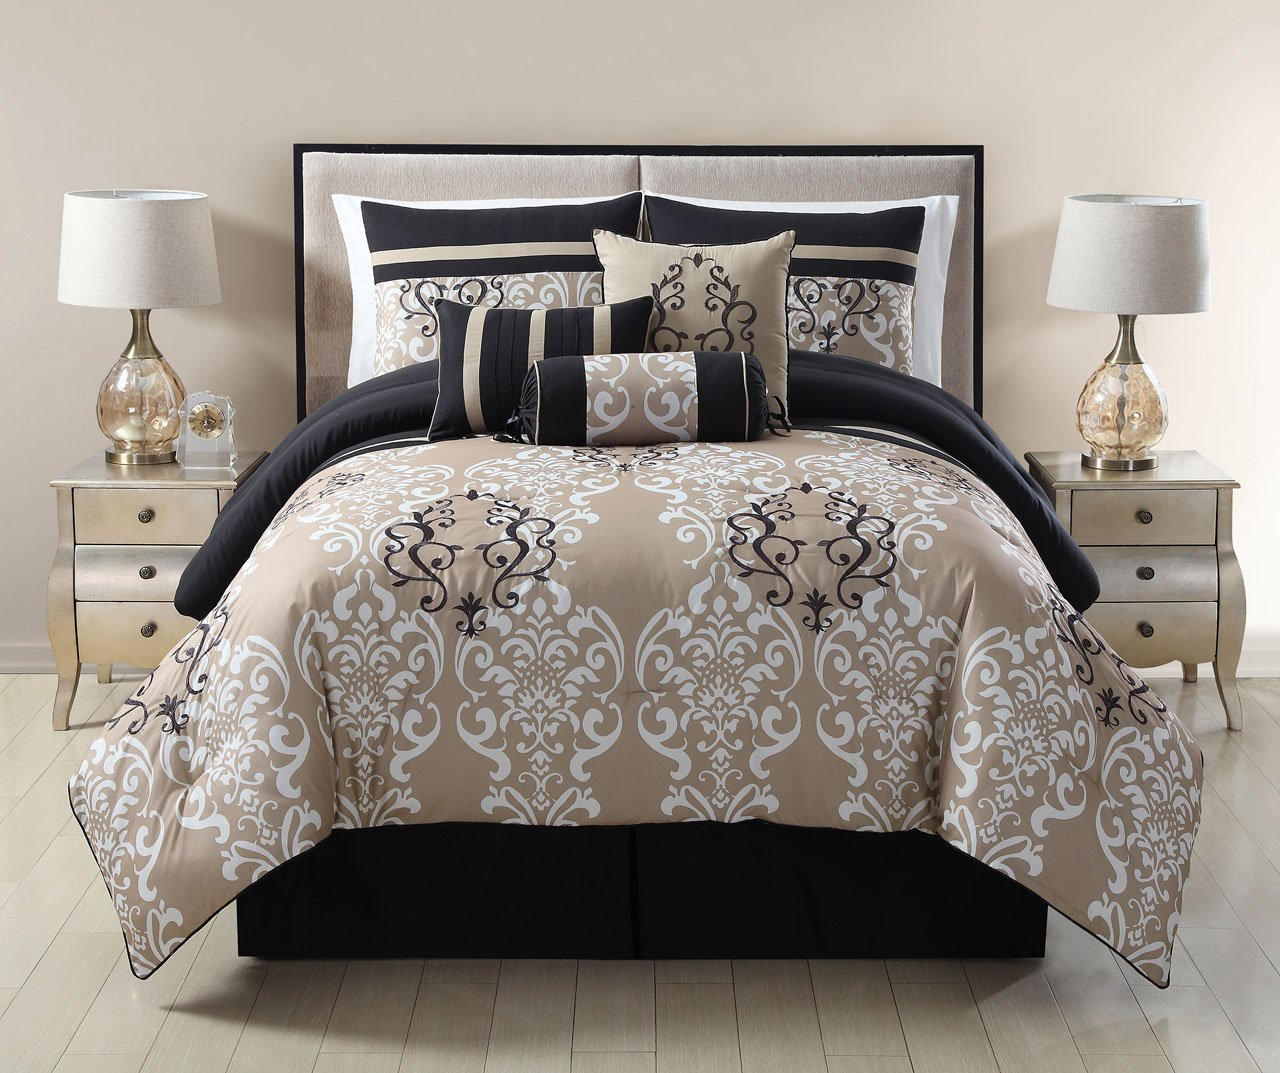 7 Piece Queen Carlisle Black/Taupe Comforter Set